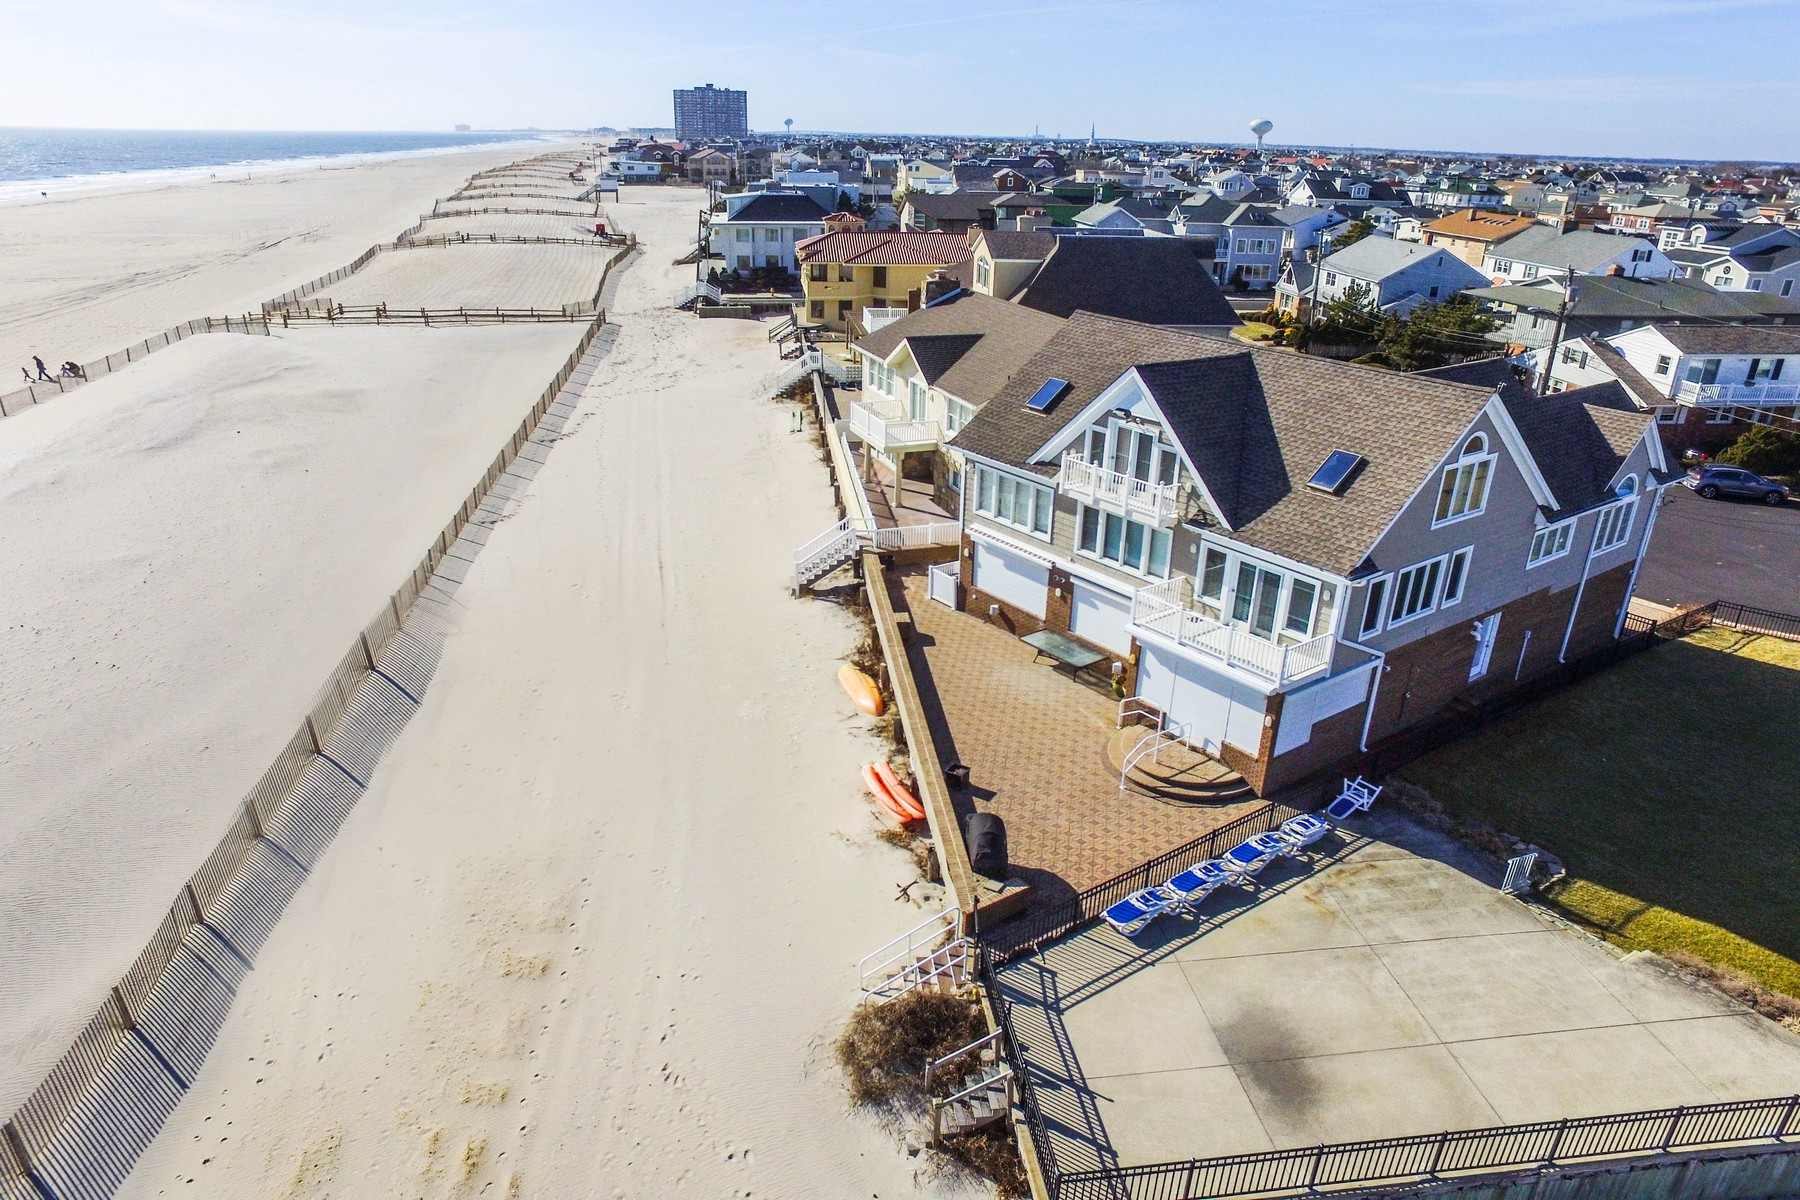 Single Family Home for Sale at 7 Dolphin Drive Margate, New Jersey 08402 United States